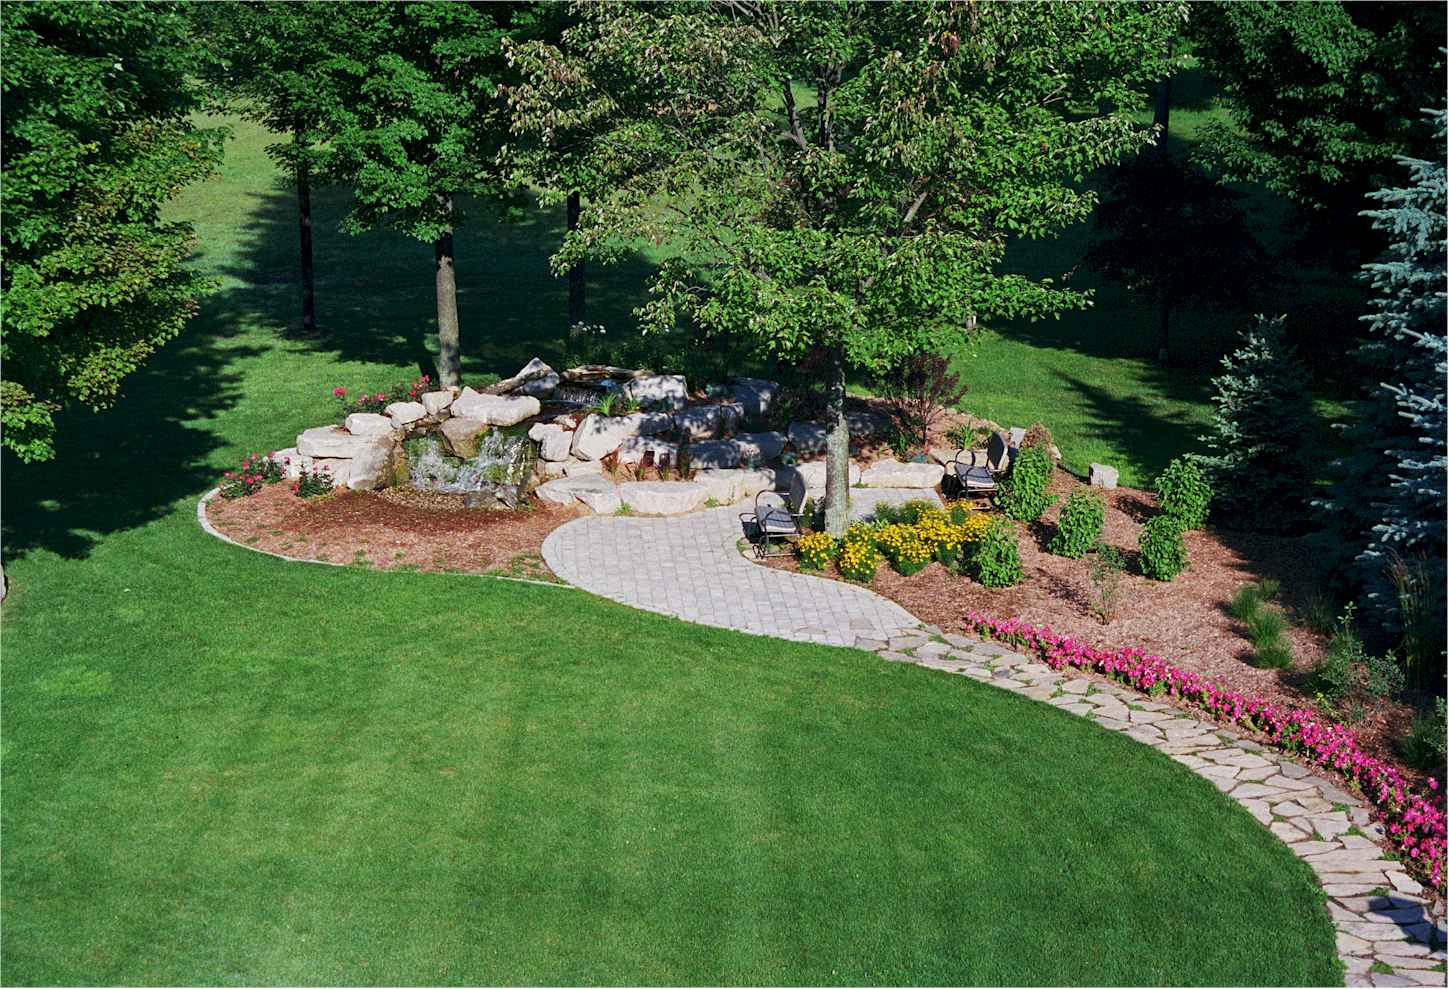 Wallpaper backgrounds landscaping for Ideas for landscaping large areas